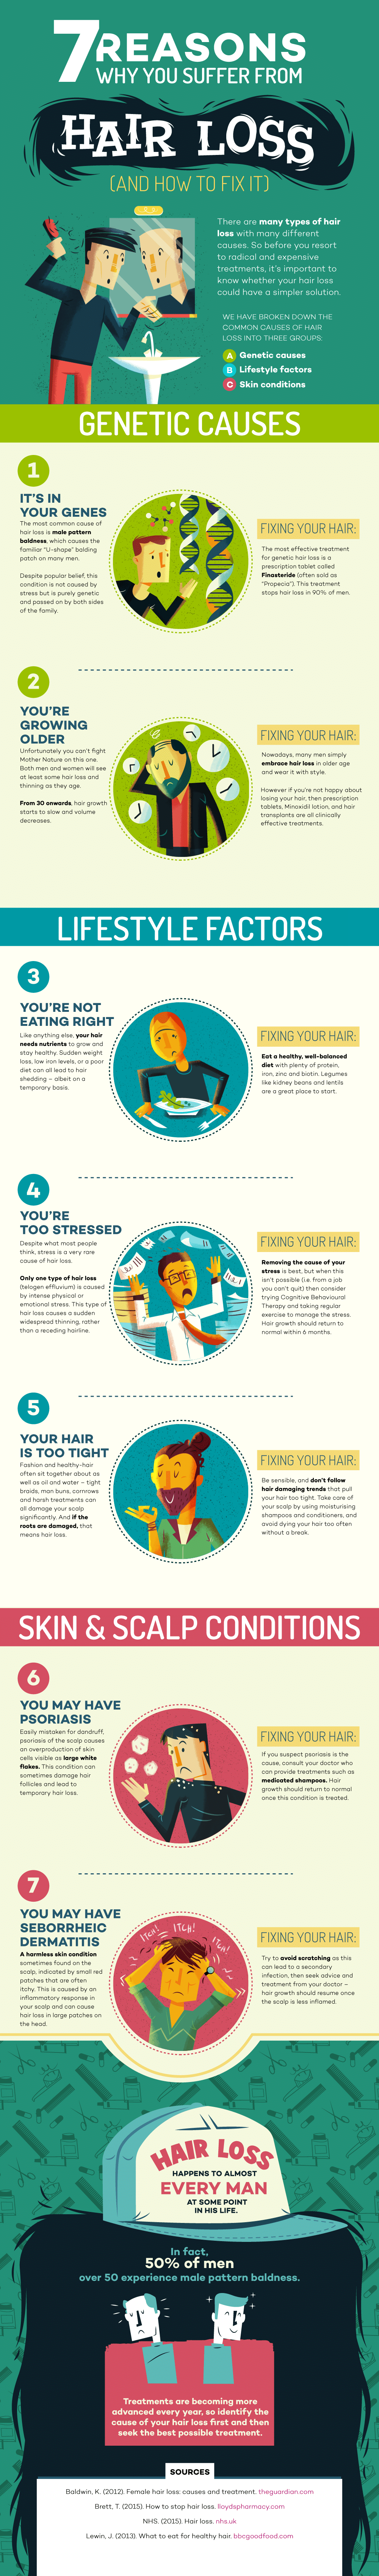 12-causes-of-hairl-loss